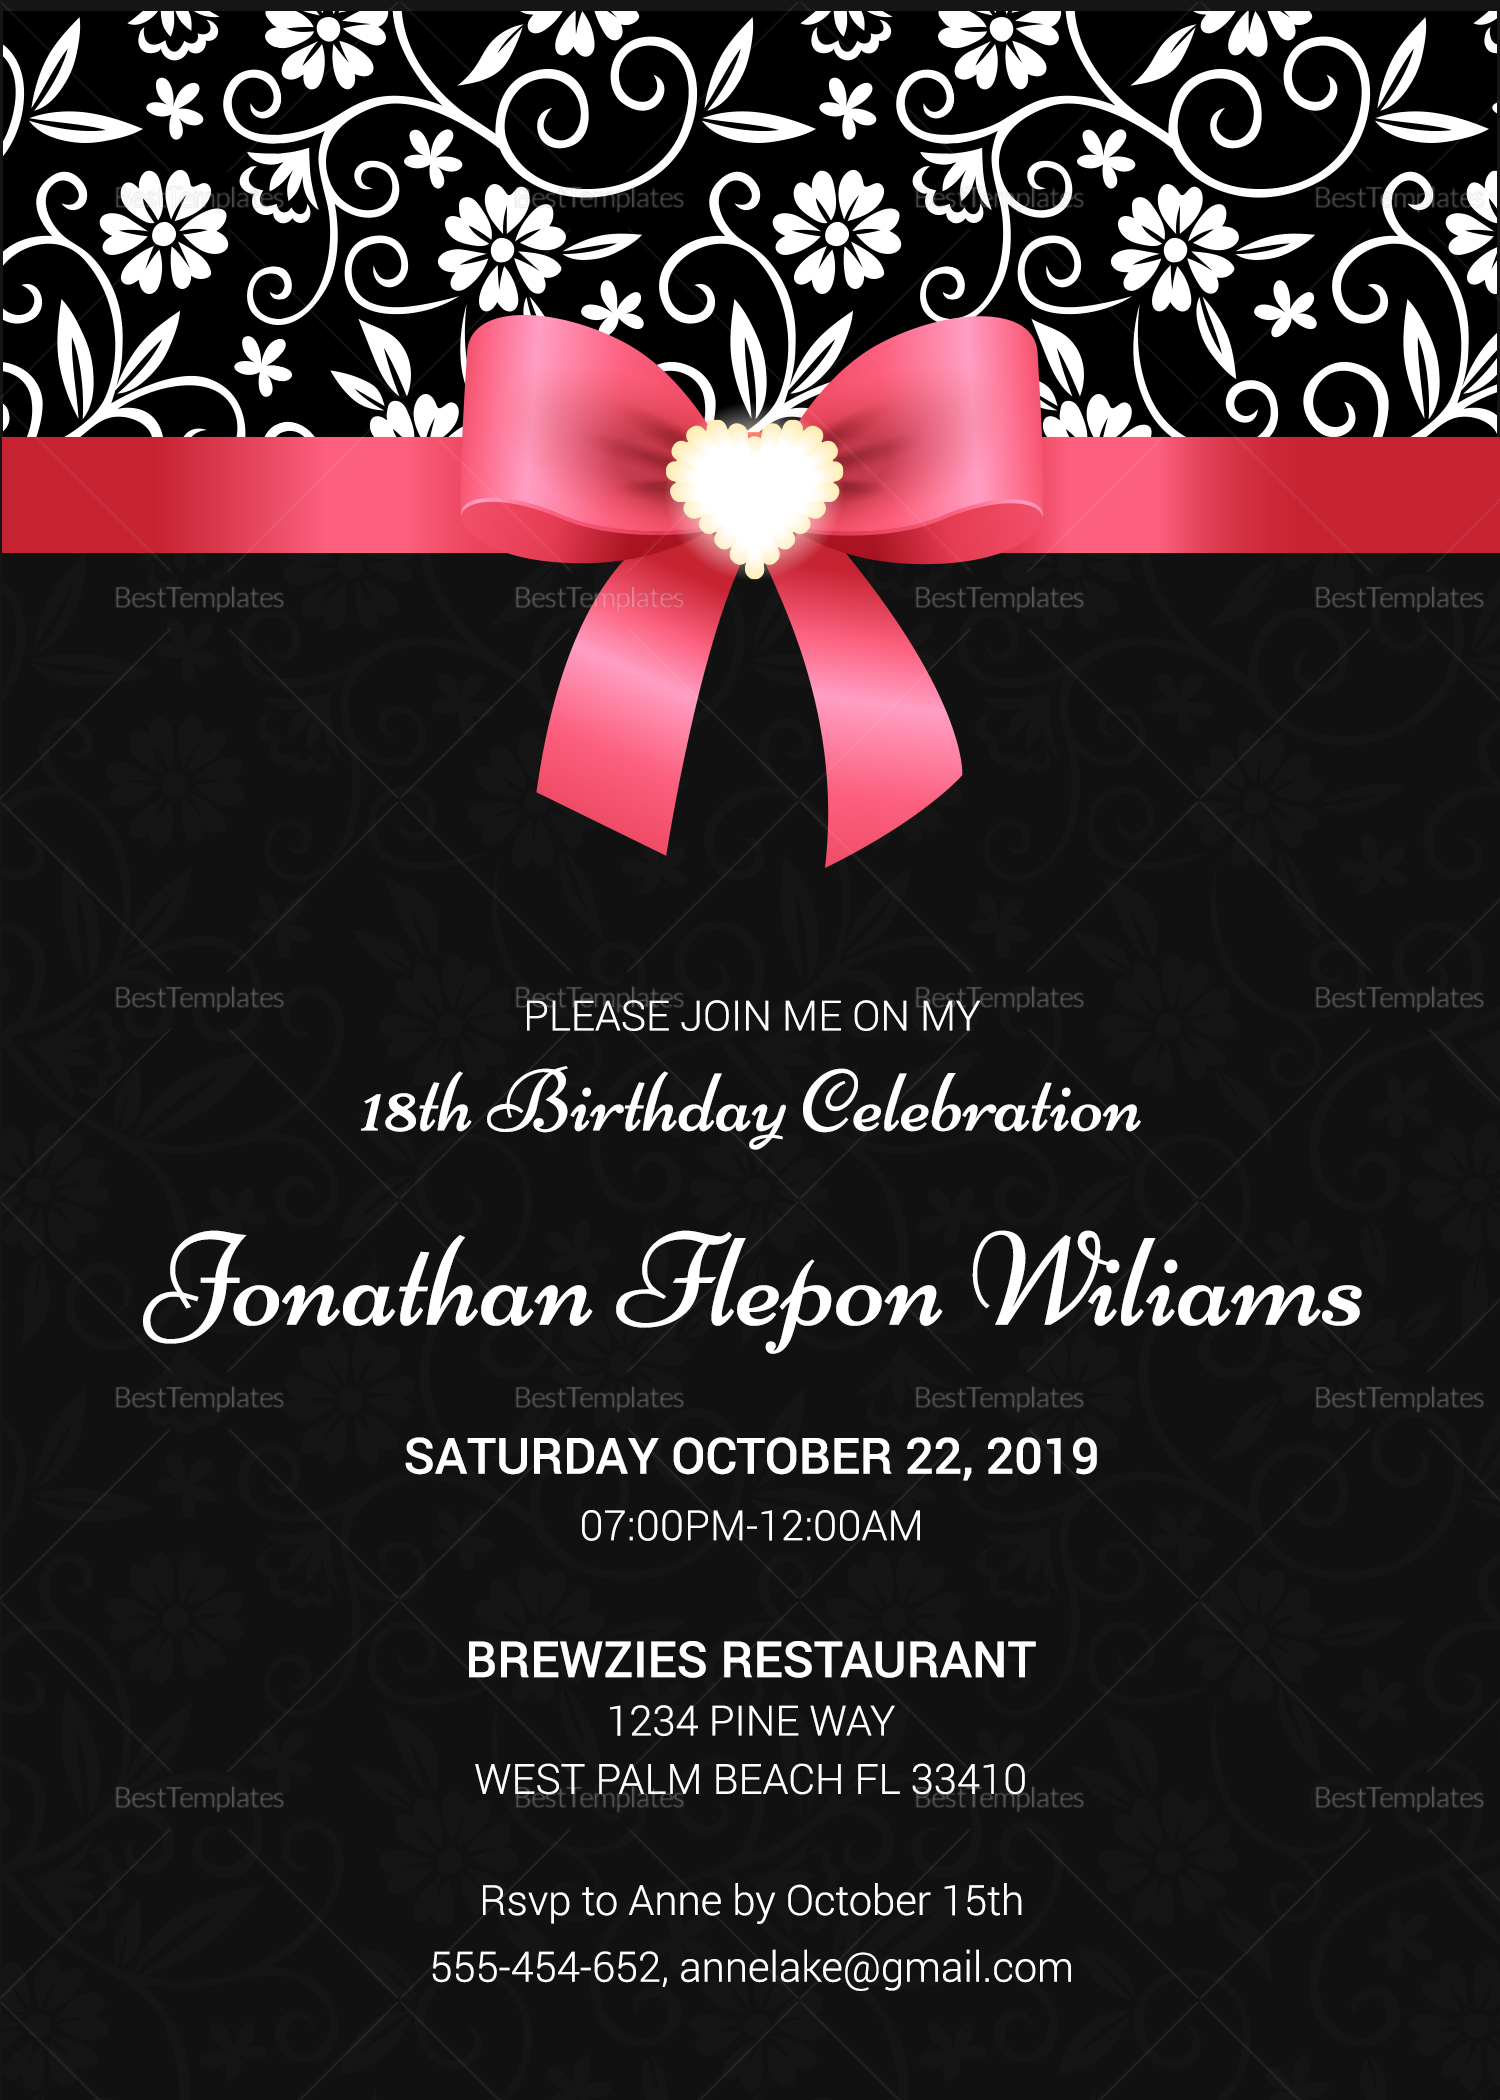 classic debut invitation card design